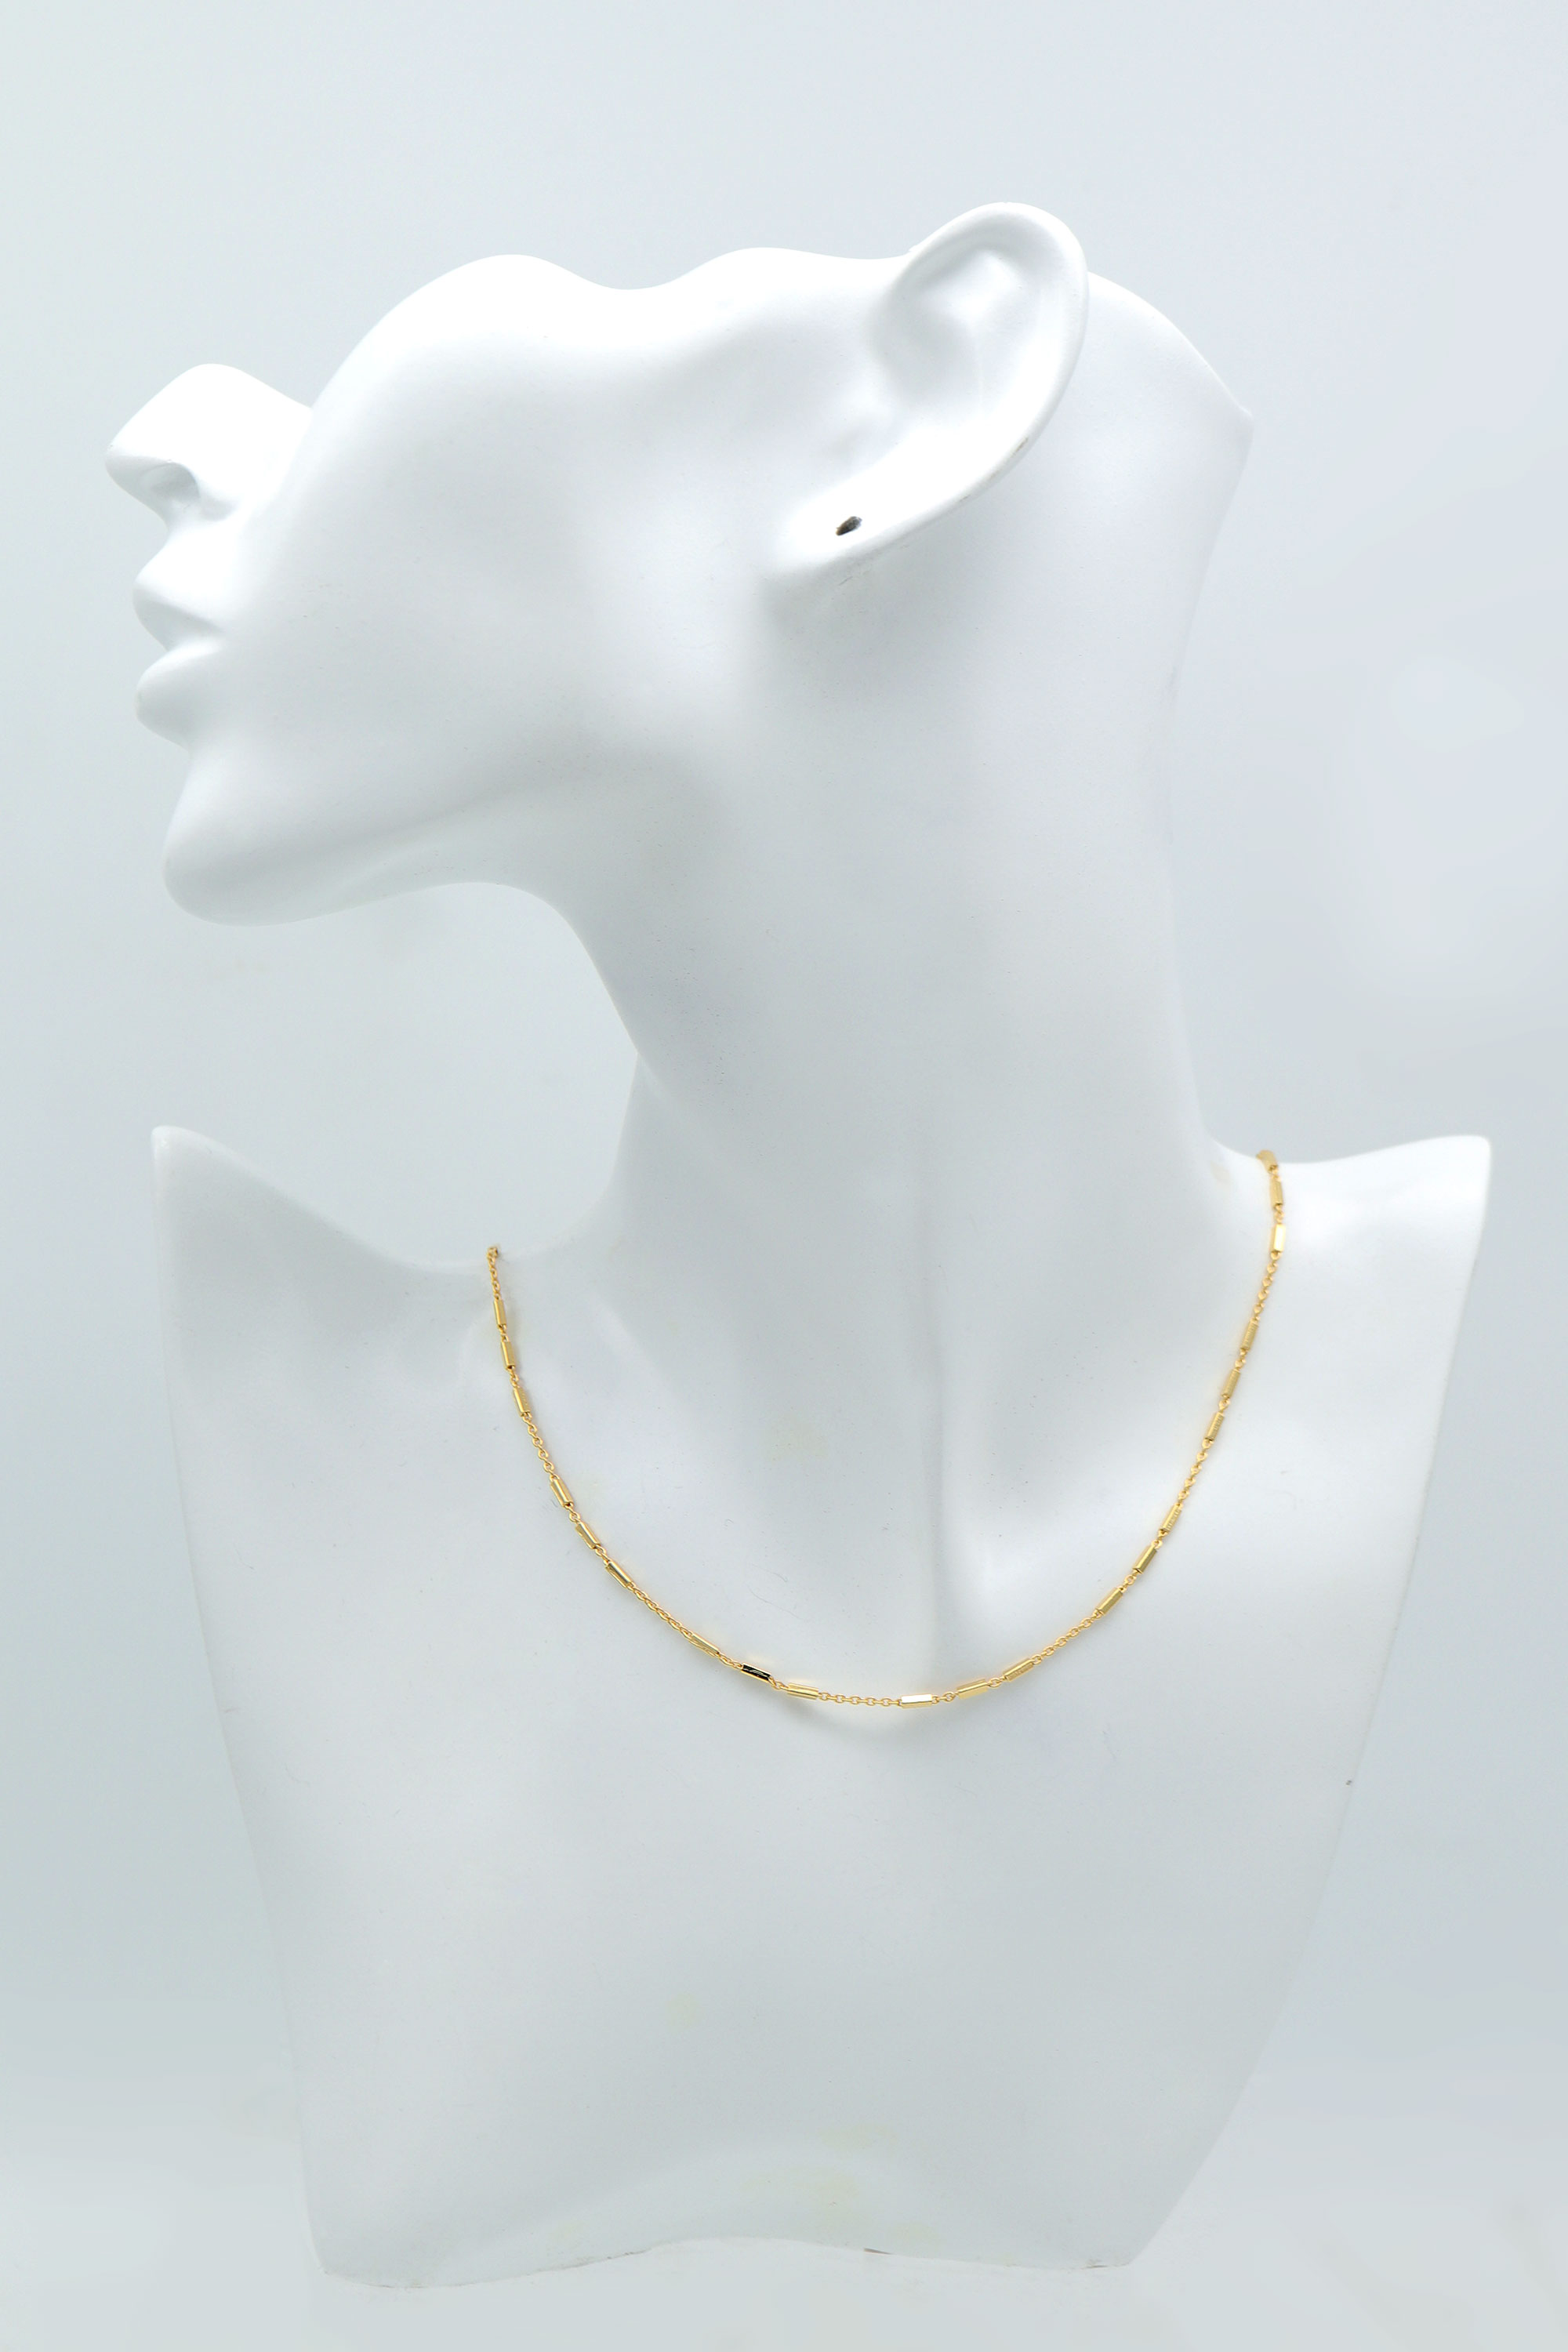 Rectangle beads pre-made chain for necklace, N3502-G